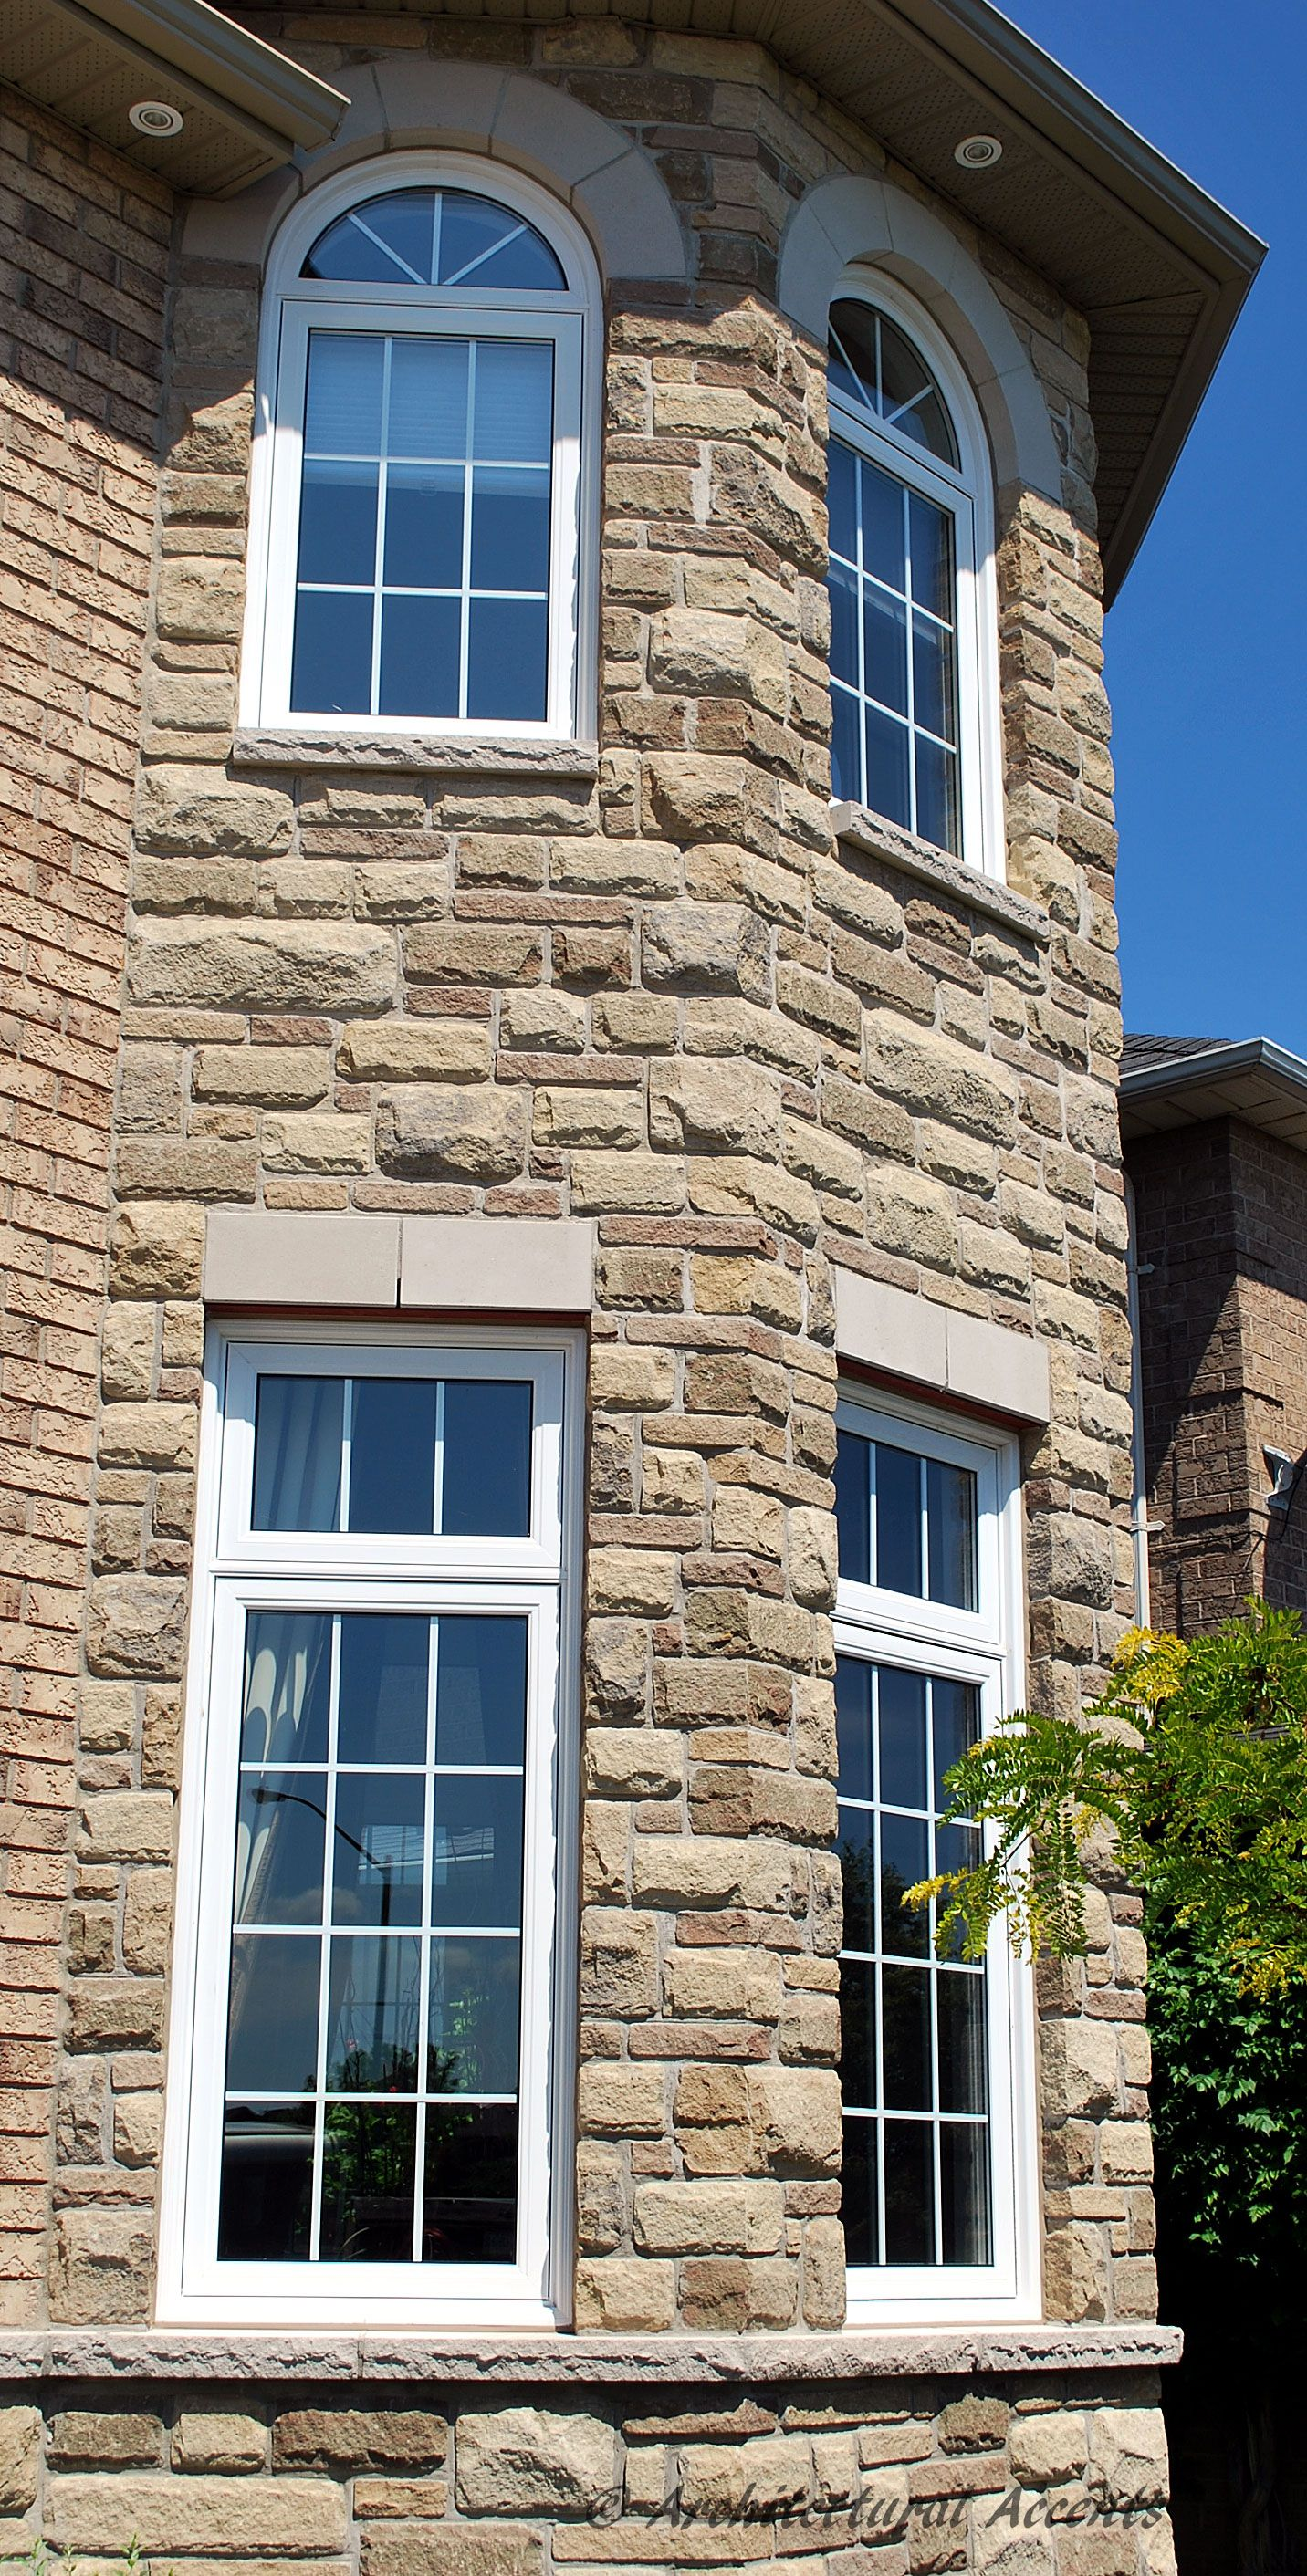 Single Casement Window With Transom Plus Arched Transoms On The Second Floor Vinyl Brick Mould